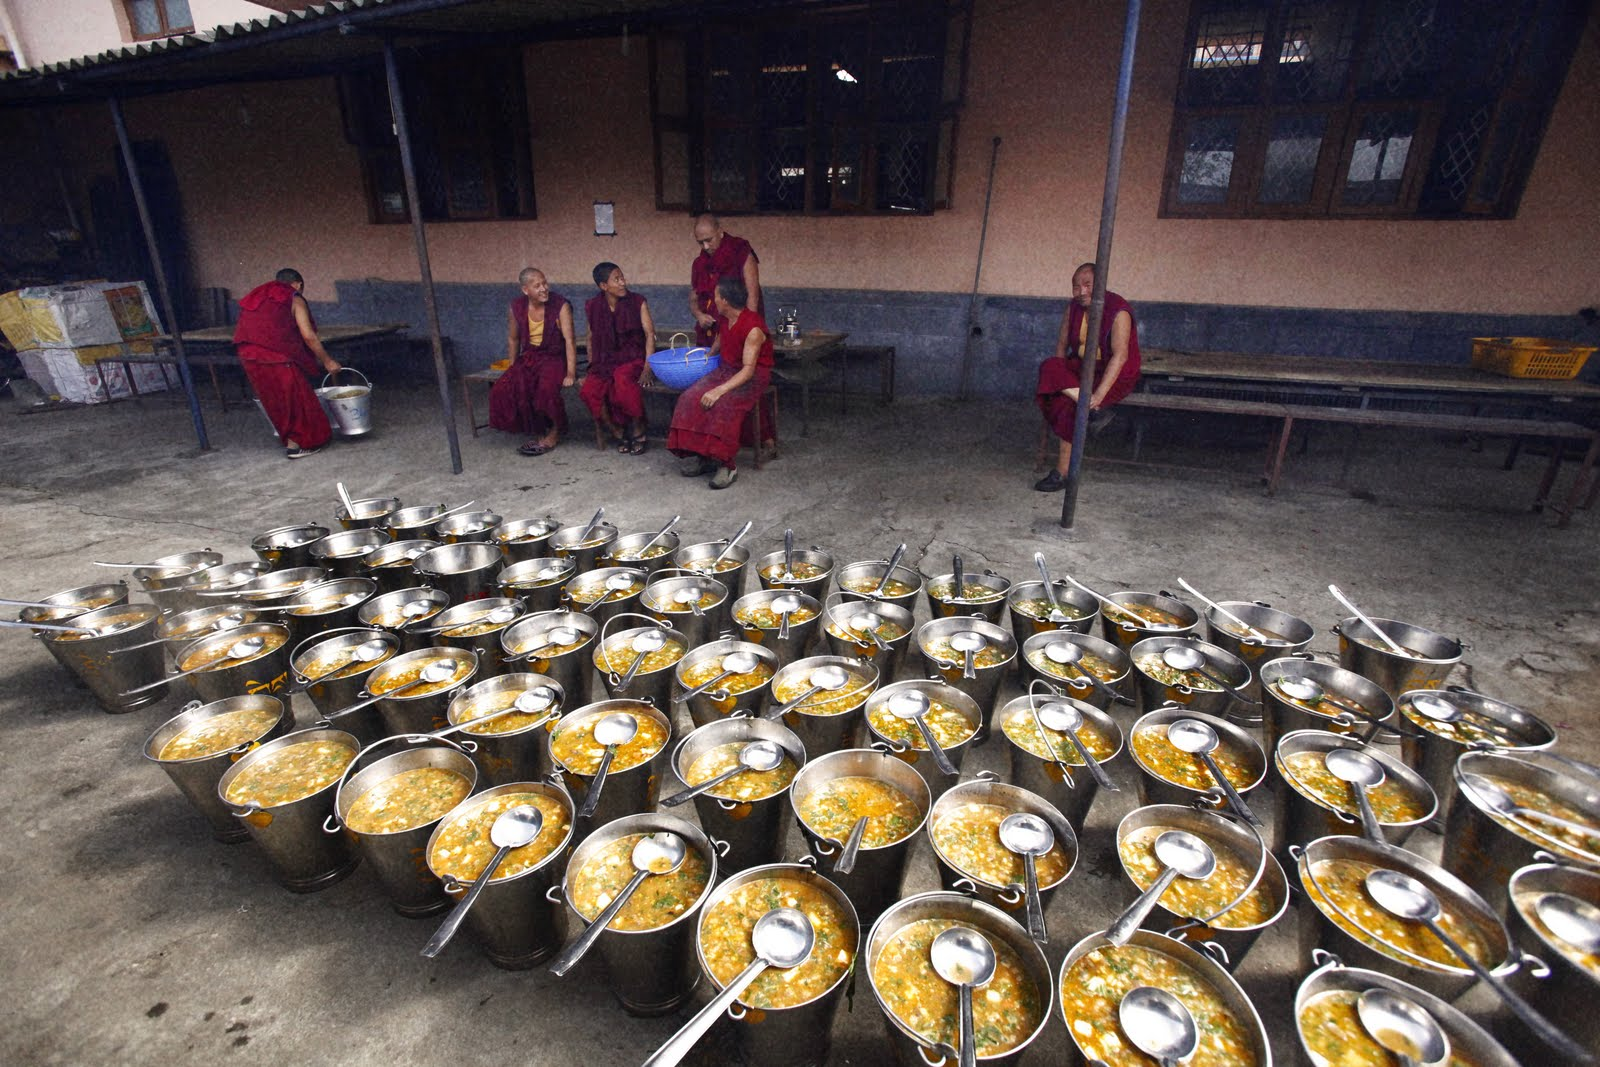 Three times each day, enough food must be prepared for 2,500 monks.